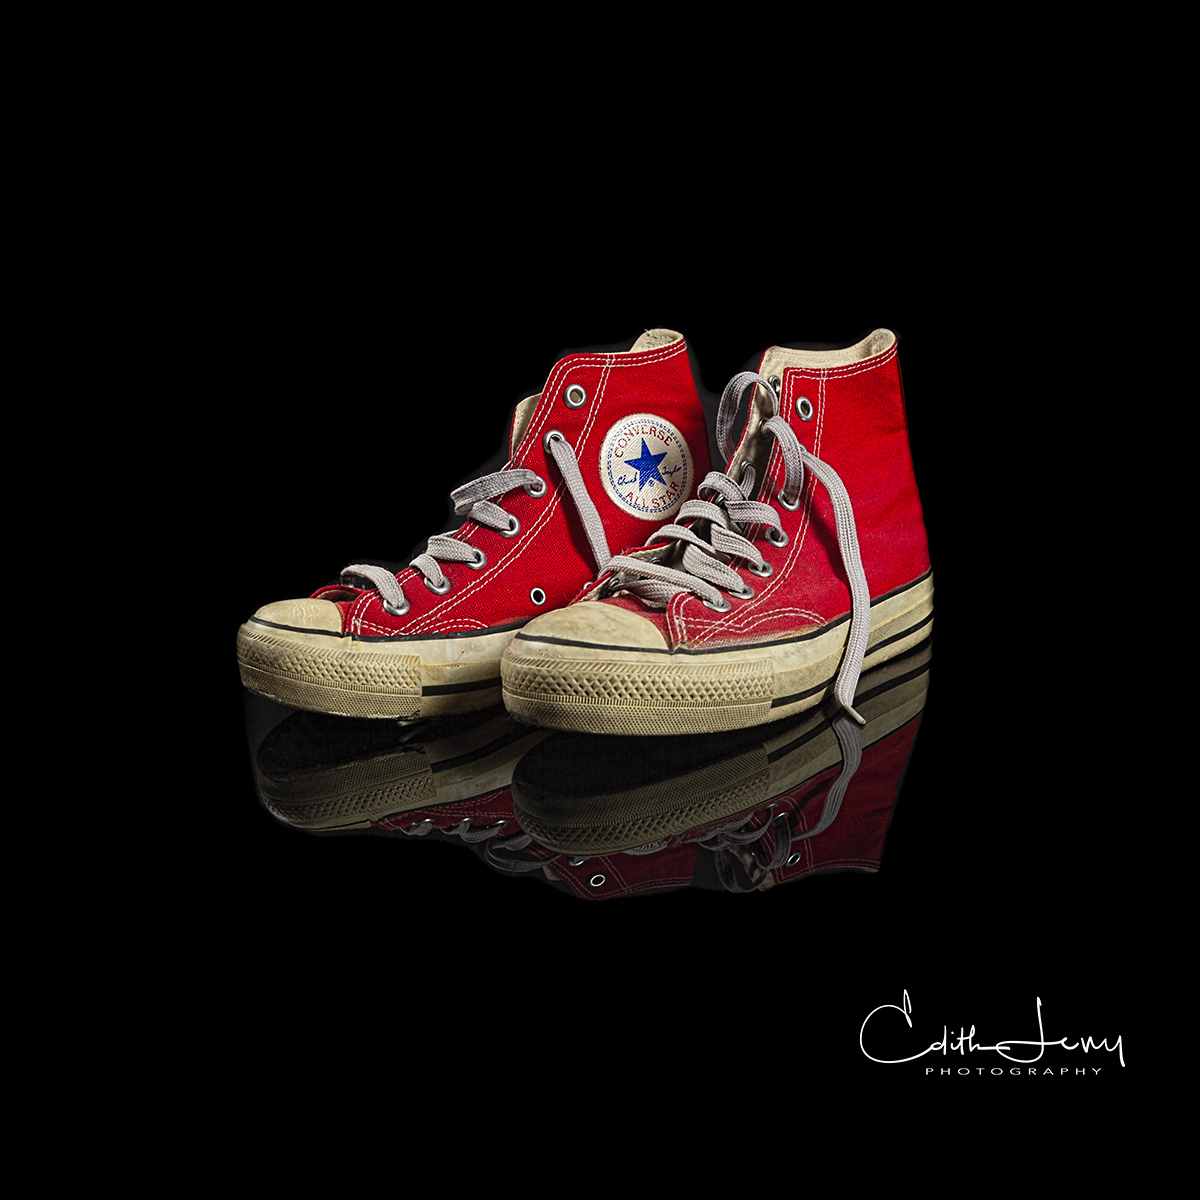 """Limited Edition of 100 The Converse """"Chuck Taylor All Stars"""" were introduced in the 1920's and has remained largely unchanged..."""